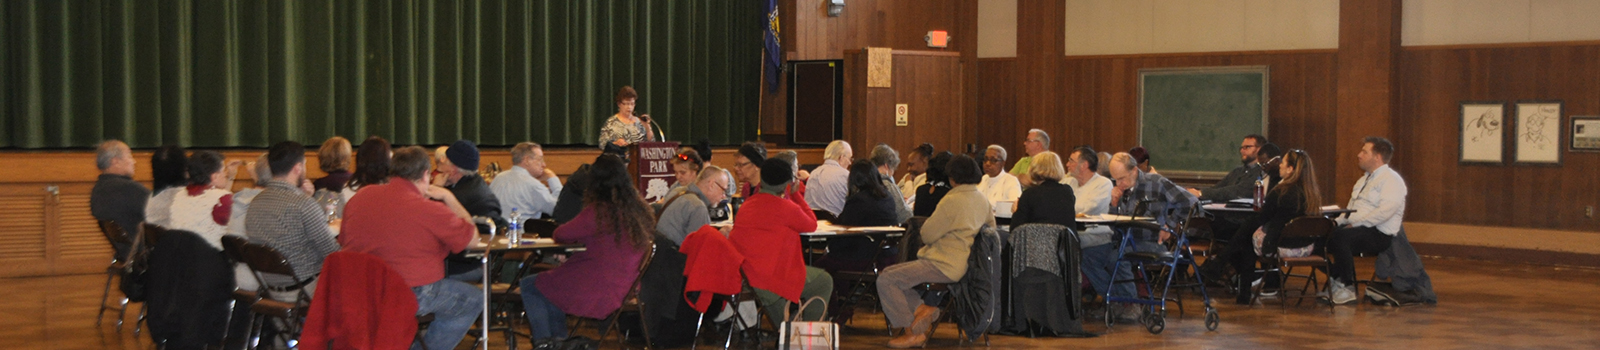 Public at an event at Washington Park Senior Center